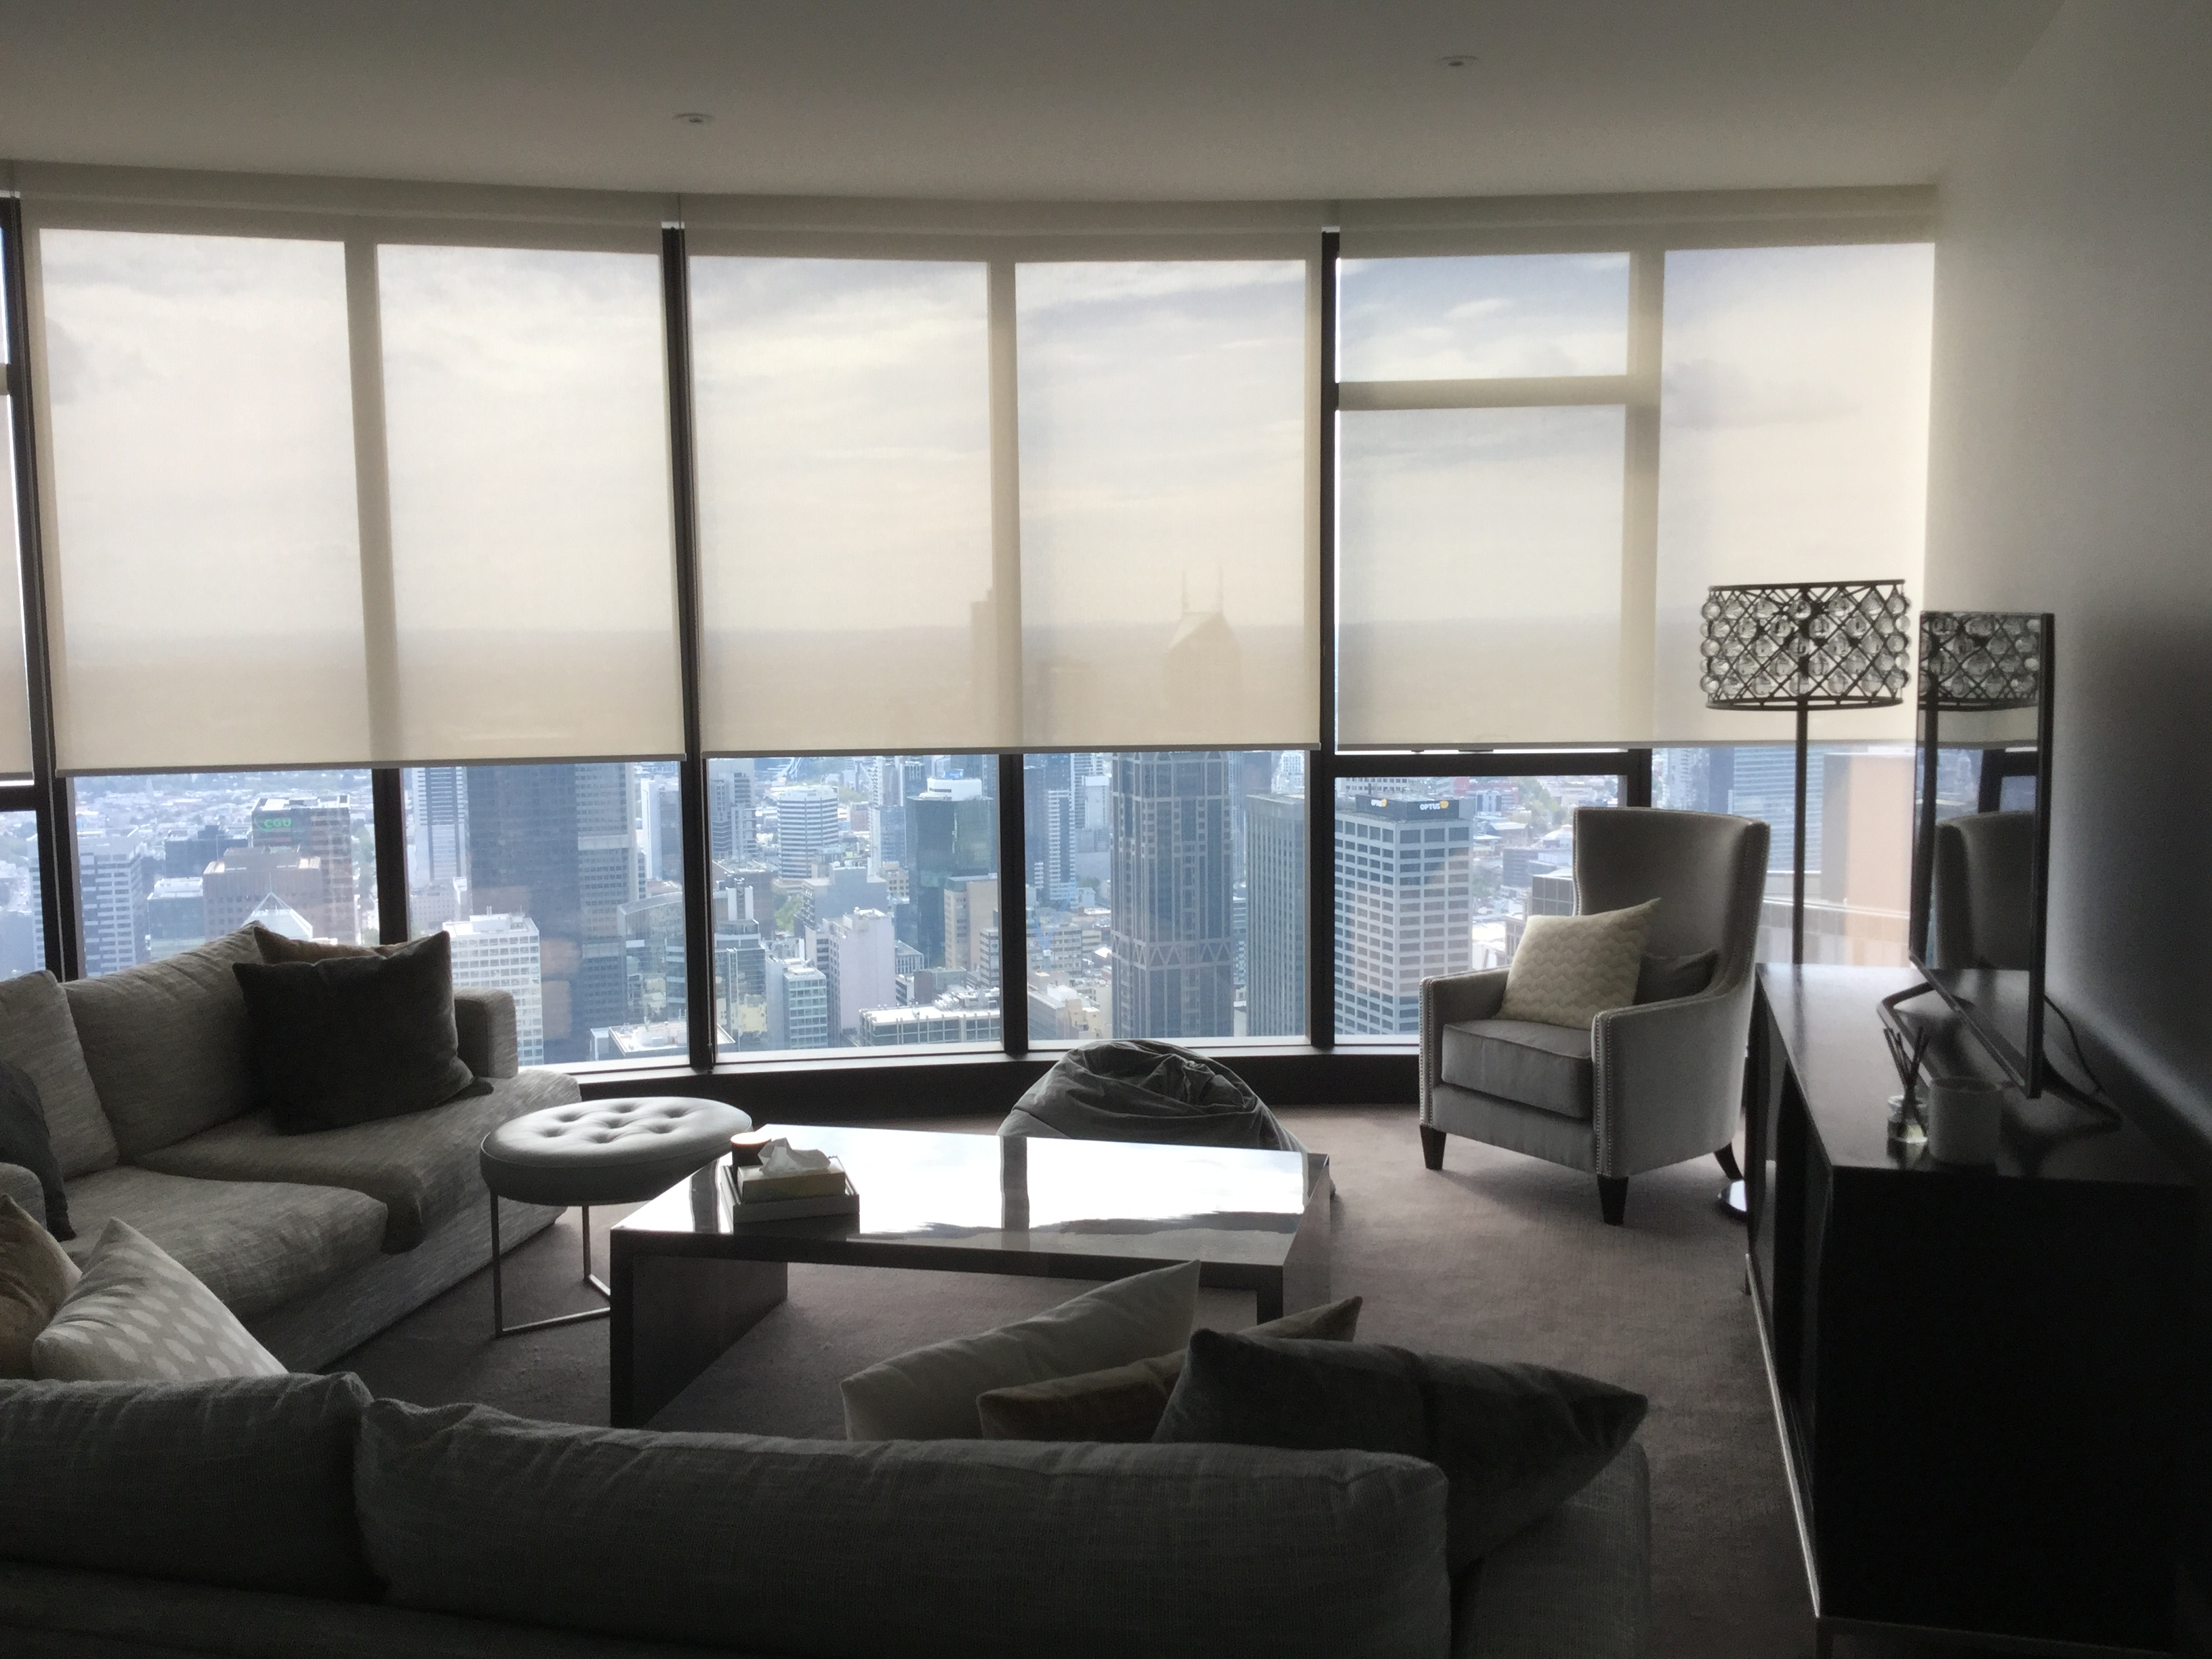 from group full window blinds qualified automated customers auto roller offers experts team support are department products automation its design the a instalation blind and fully both melbourne sales groupalessi alessi installation these